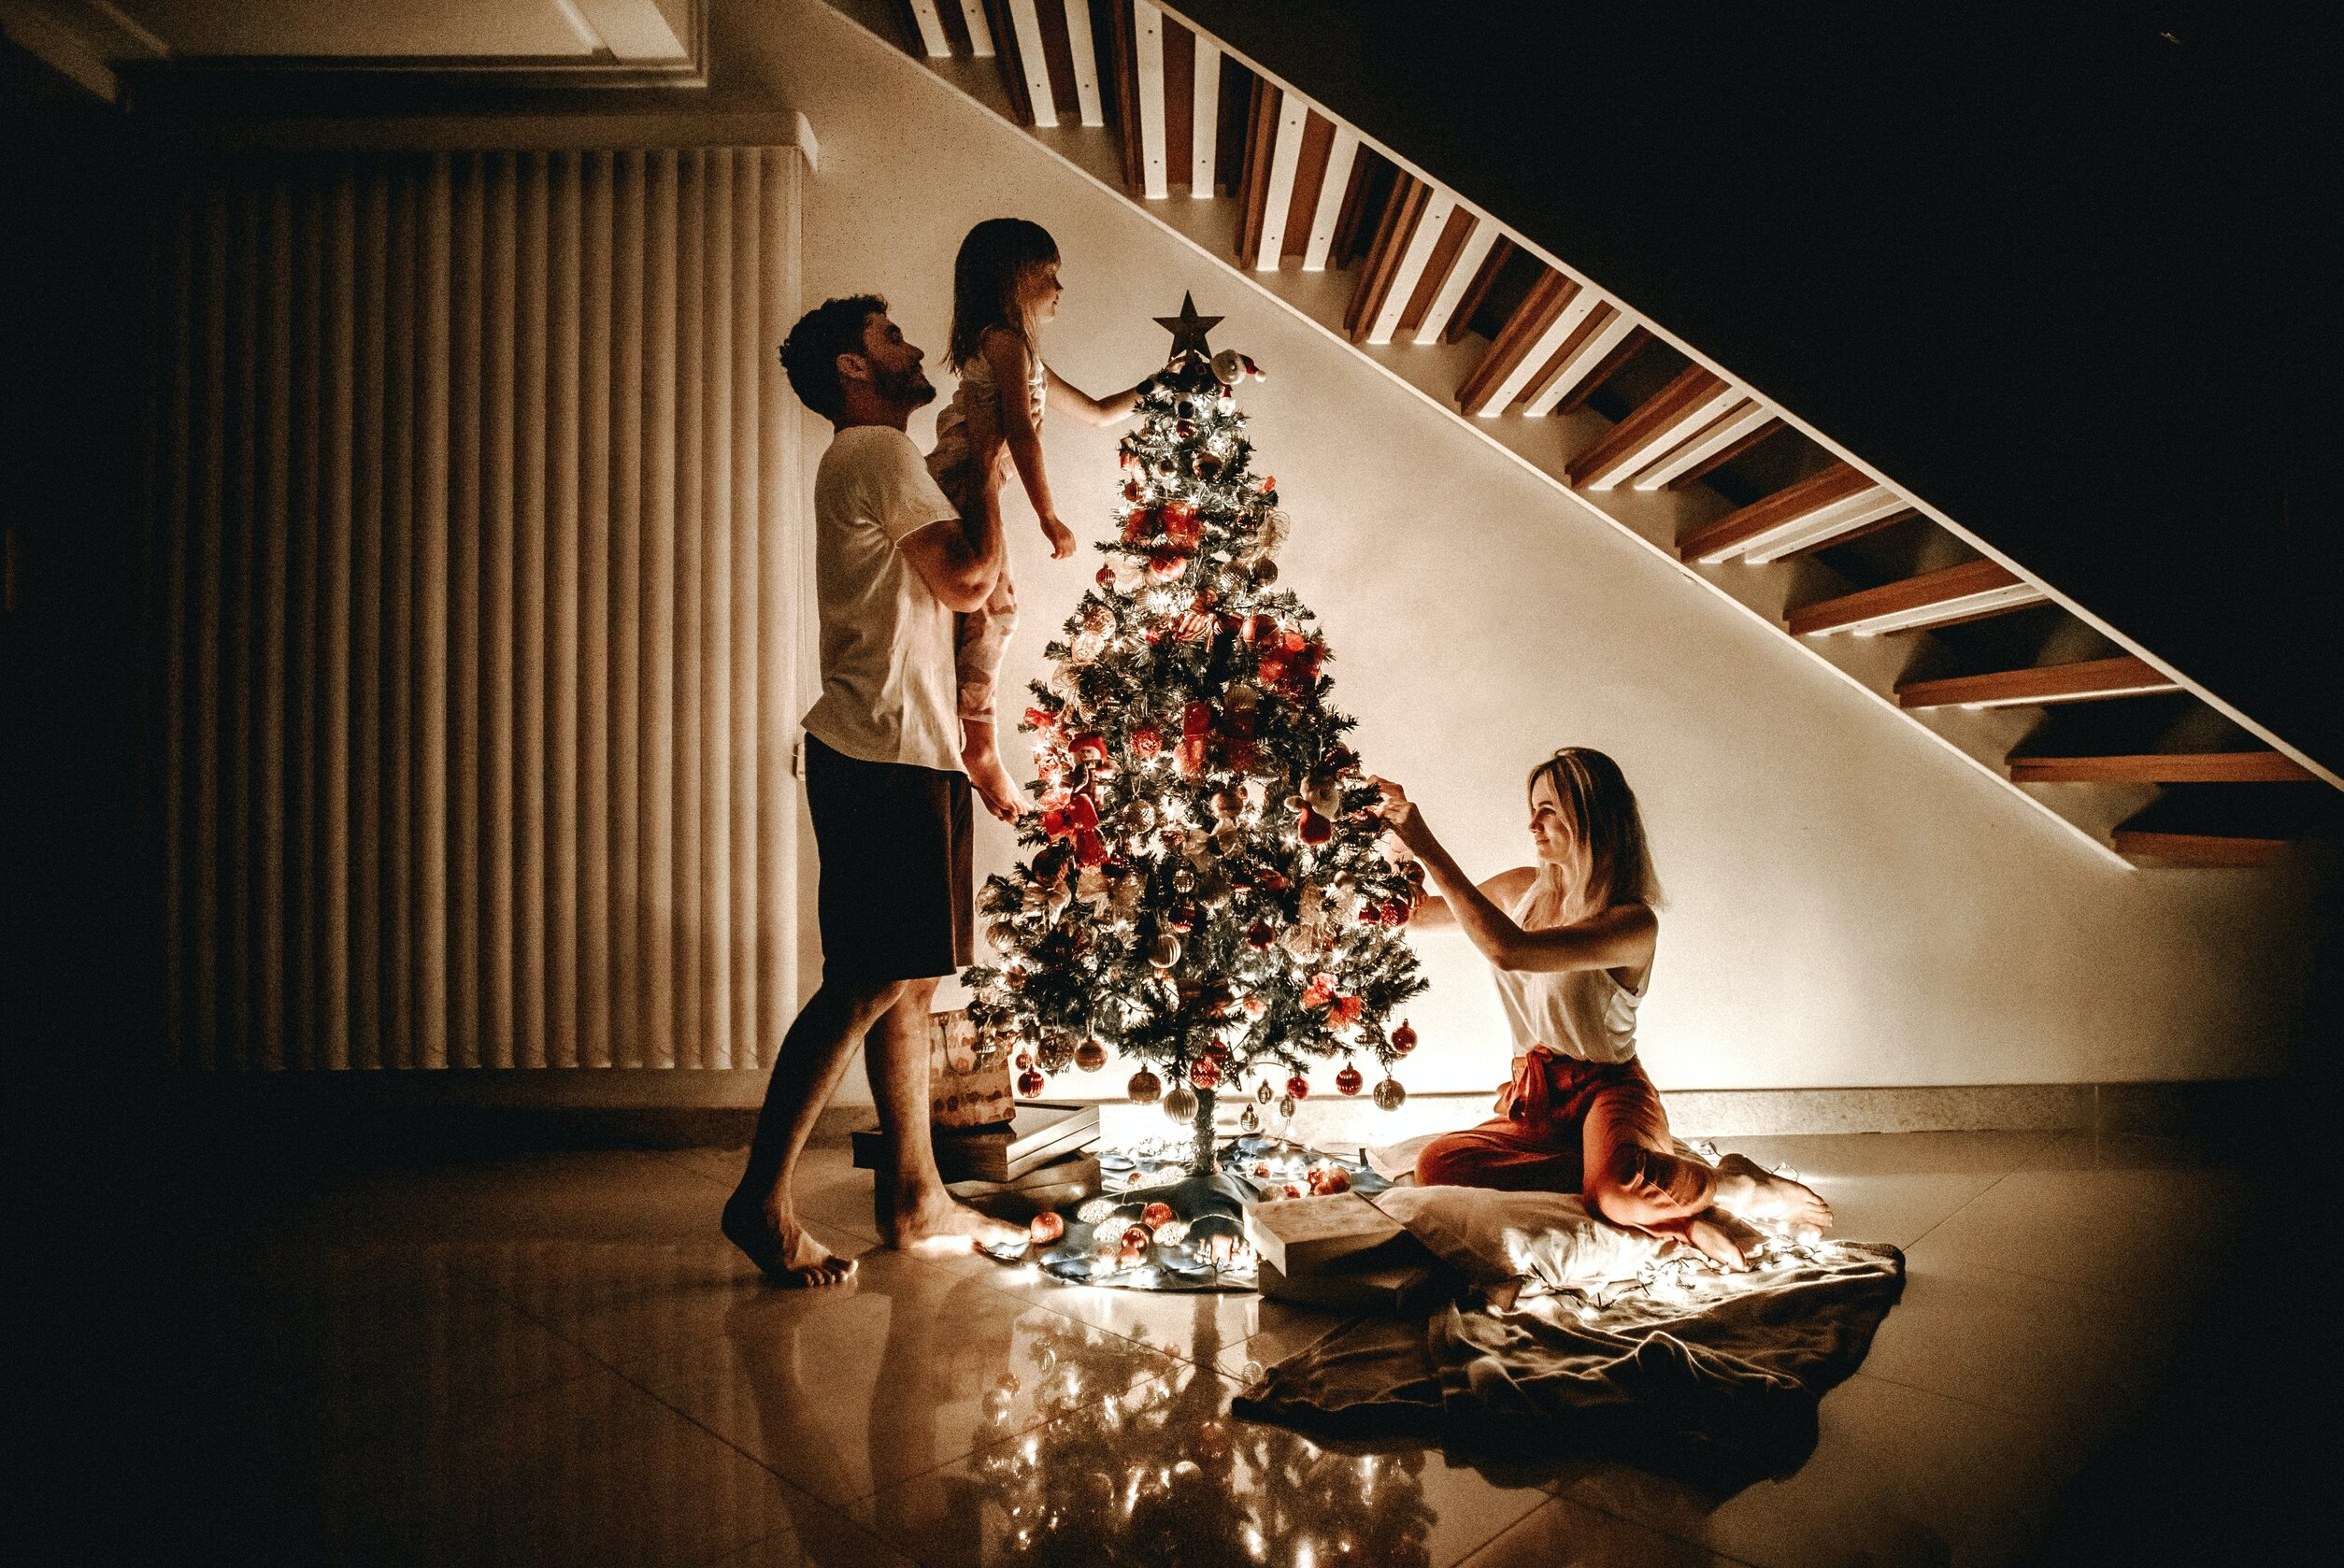 Seasonal Makeovers: 3 Merry Reasons You Should Renovate Your Home Before the Holidays